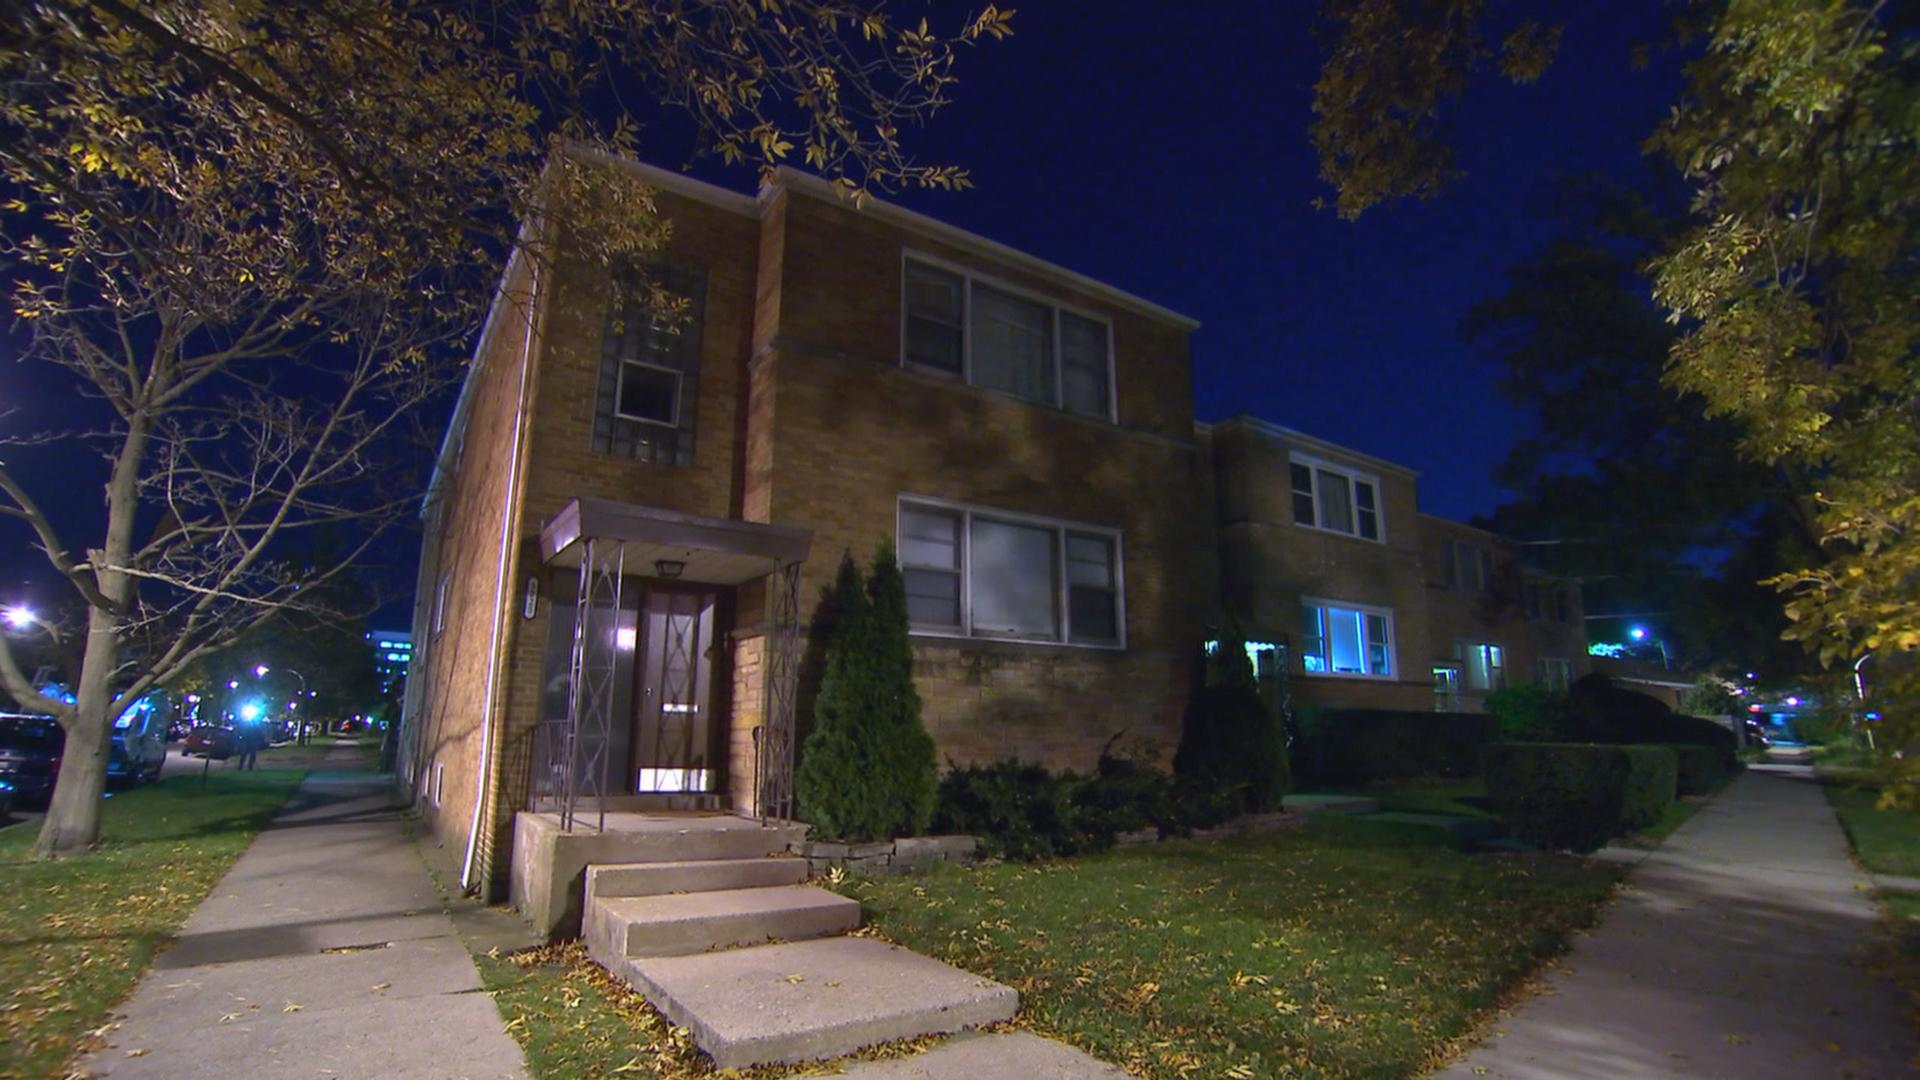 Feds Swarm North Side Two-Flat, But Few Details Released